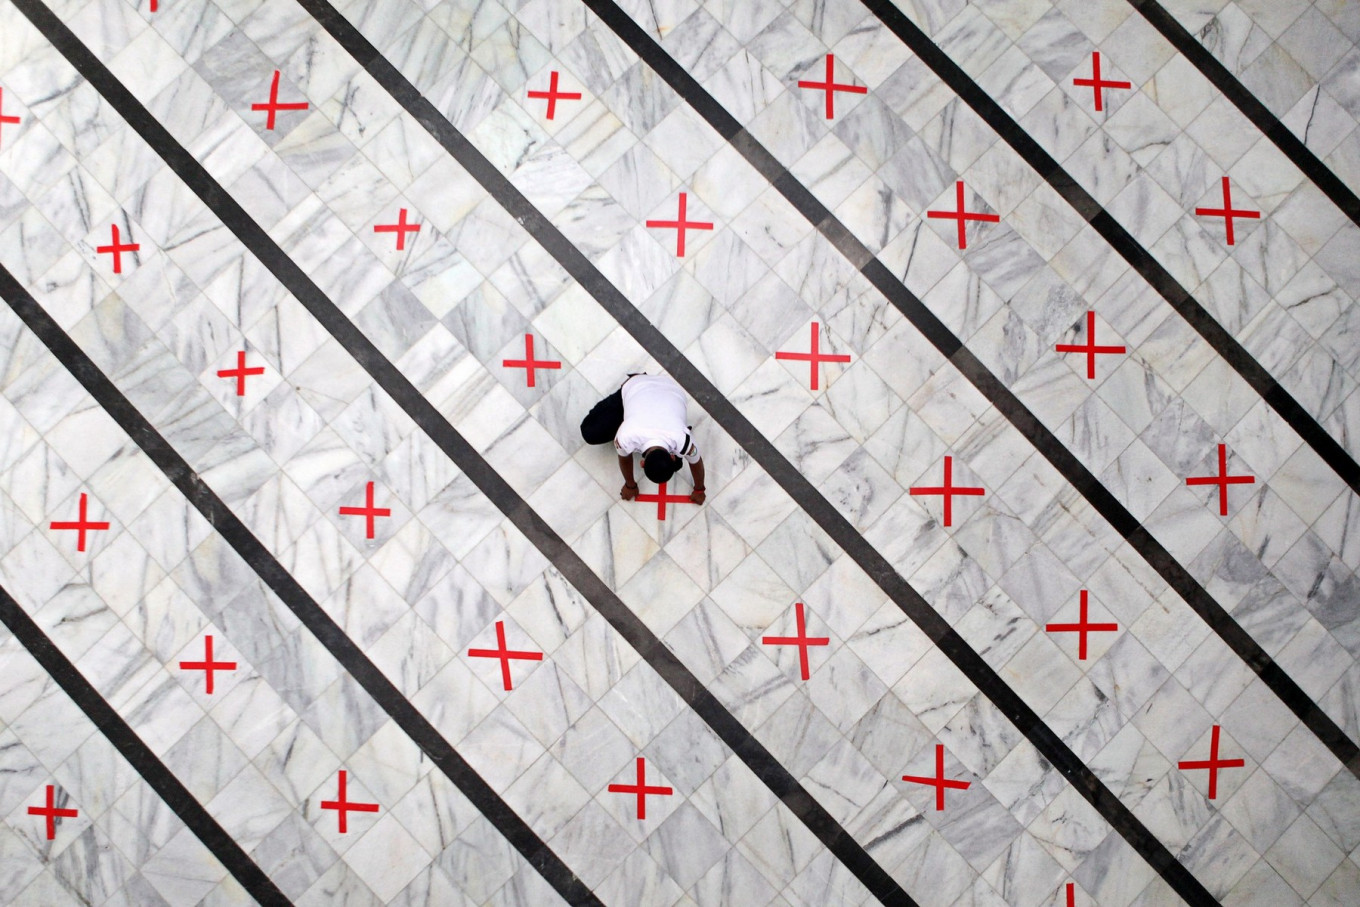 A mosque staff member fixes a physical distancing mark on the floor of the Cut Meutia Mosque in Central Jakarta on Thursday, which had been closed to curb the spread of COVID-19. The city administration has extended large-scale social restrictions but will gradually lift some of the rules, such as allowing houses of worship, shopping centers and offices to open. JP/Seto Wardhana